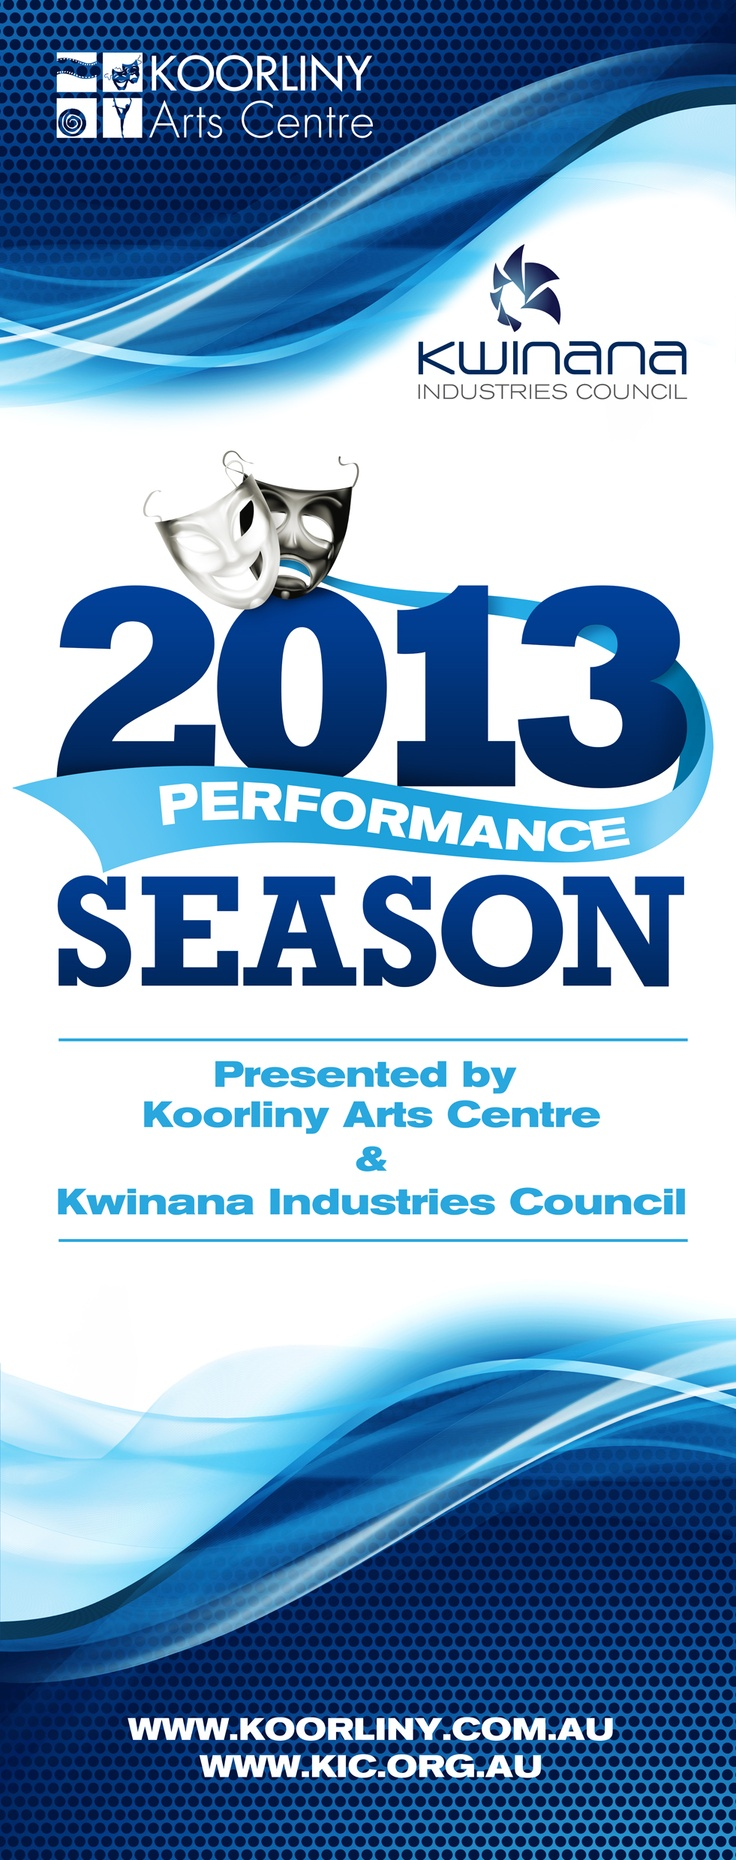 Ladies and gentlemen, we present to you the Koorliny Arts Centre and Kwinana Industries Council 2013 Performance Season.     With thanks also to our associate partner, the Kwinana/Weekend Courier.